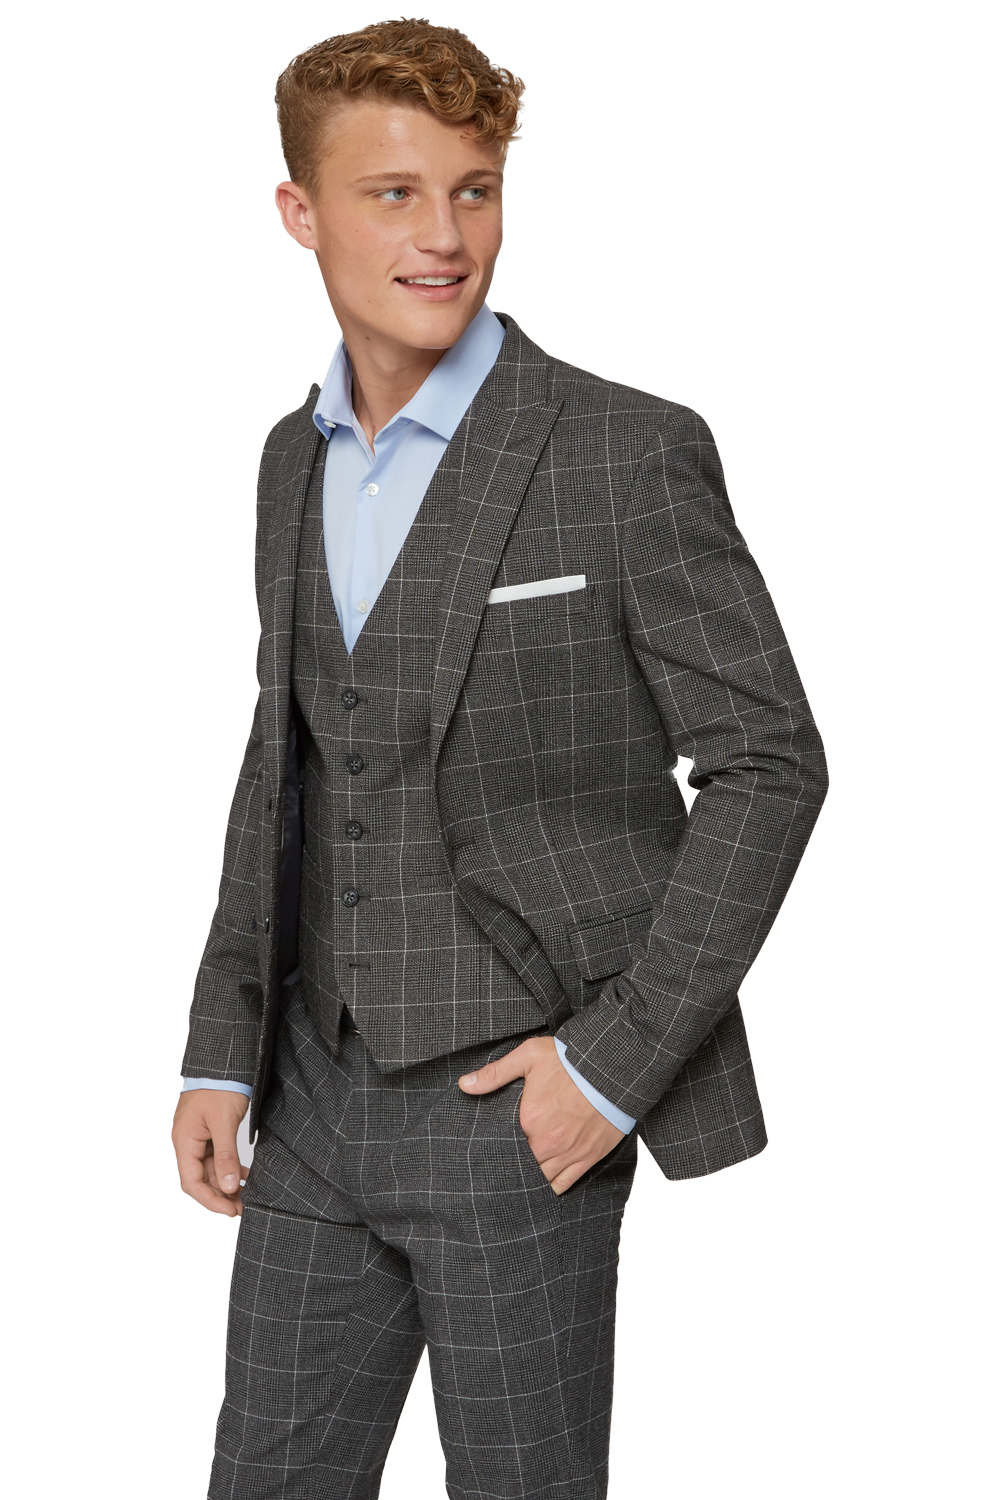 Moss Bros Mens Charcoal Grey Suit Jacket Check